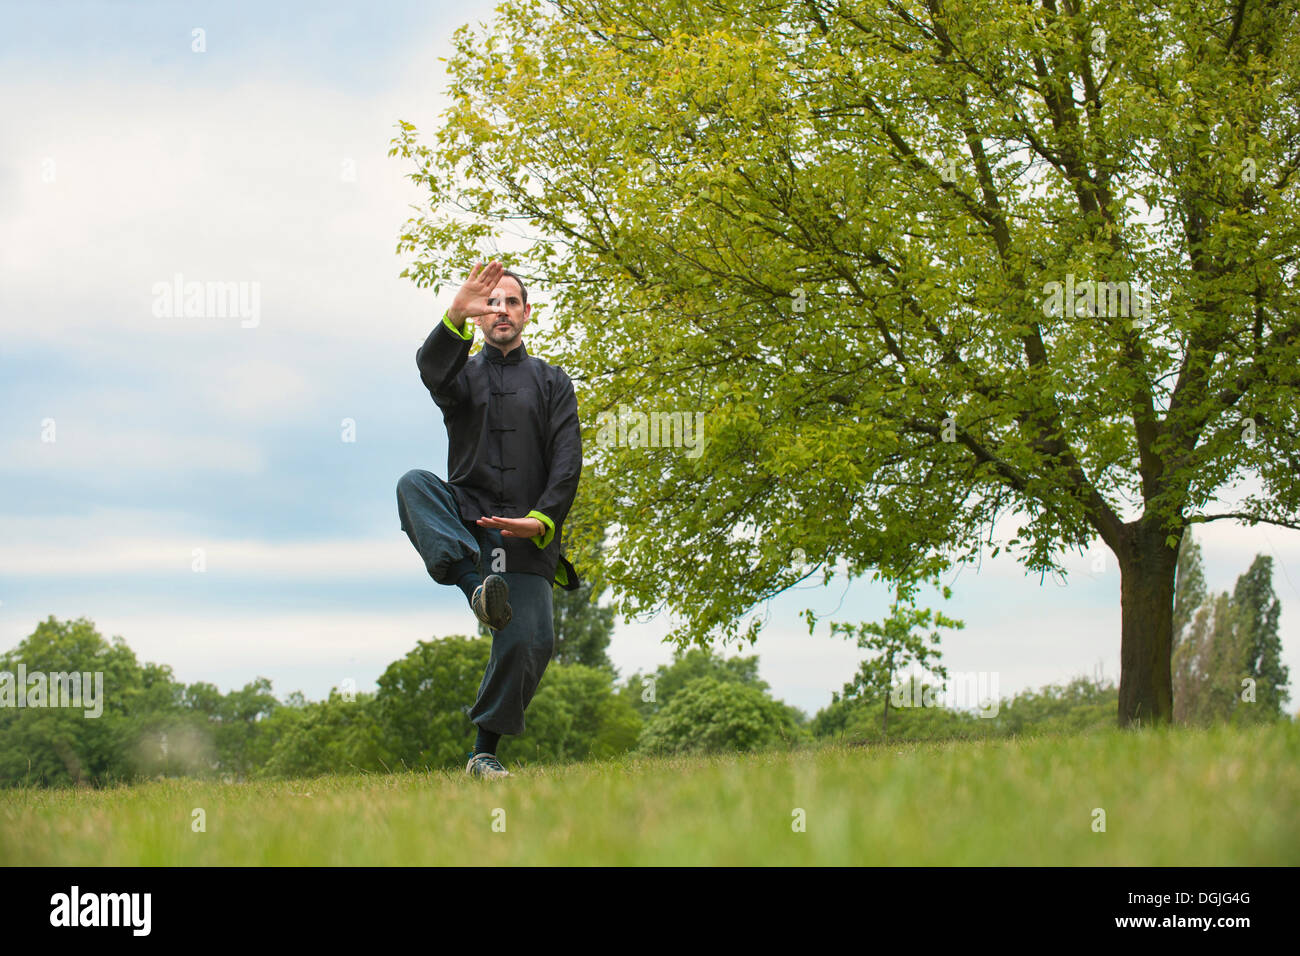 Mature man performing Tai Chi in countryside - Stock Image